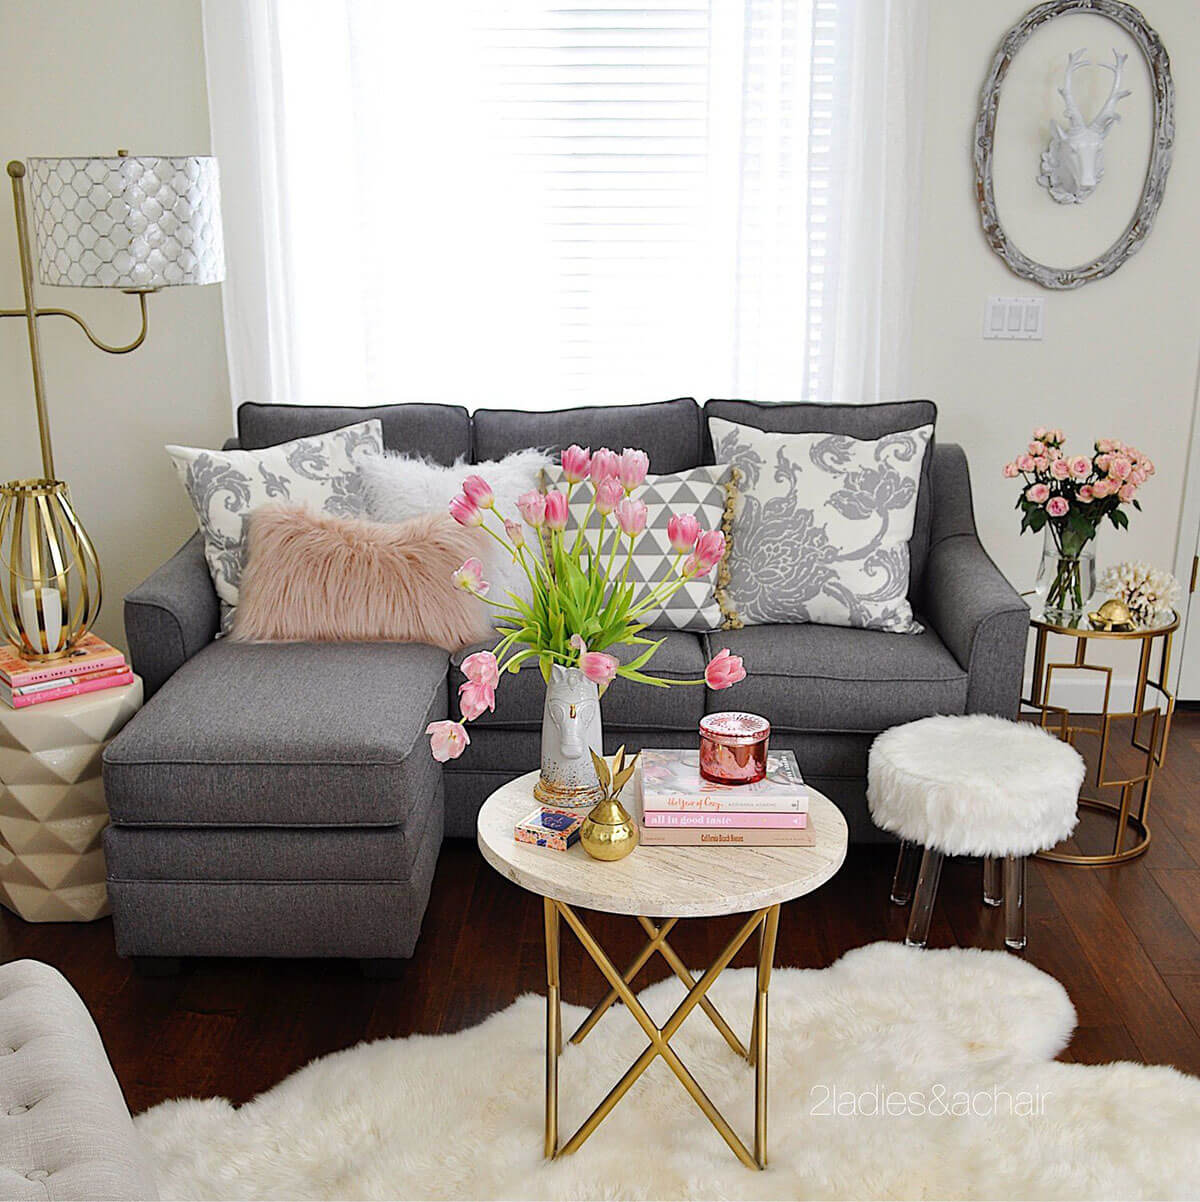 Home Decorating Living Room Ideas 2019: 25+ Best Small Living Room Decor And Design Ideas For 2019